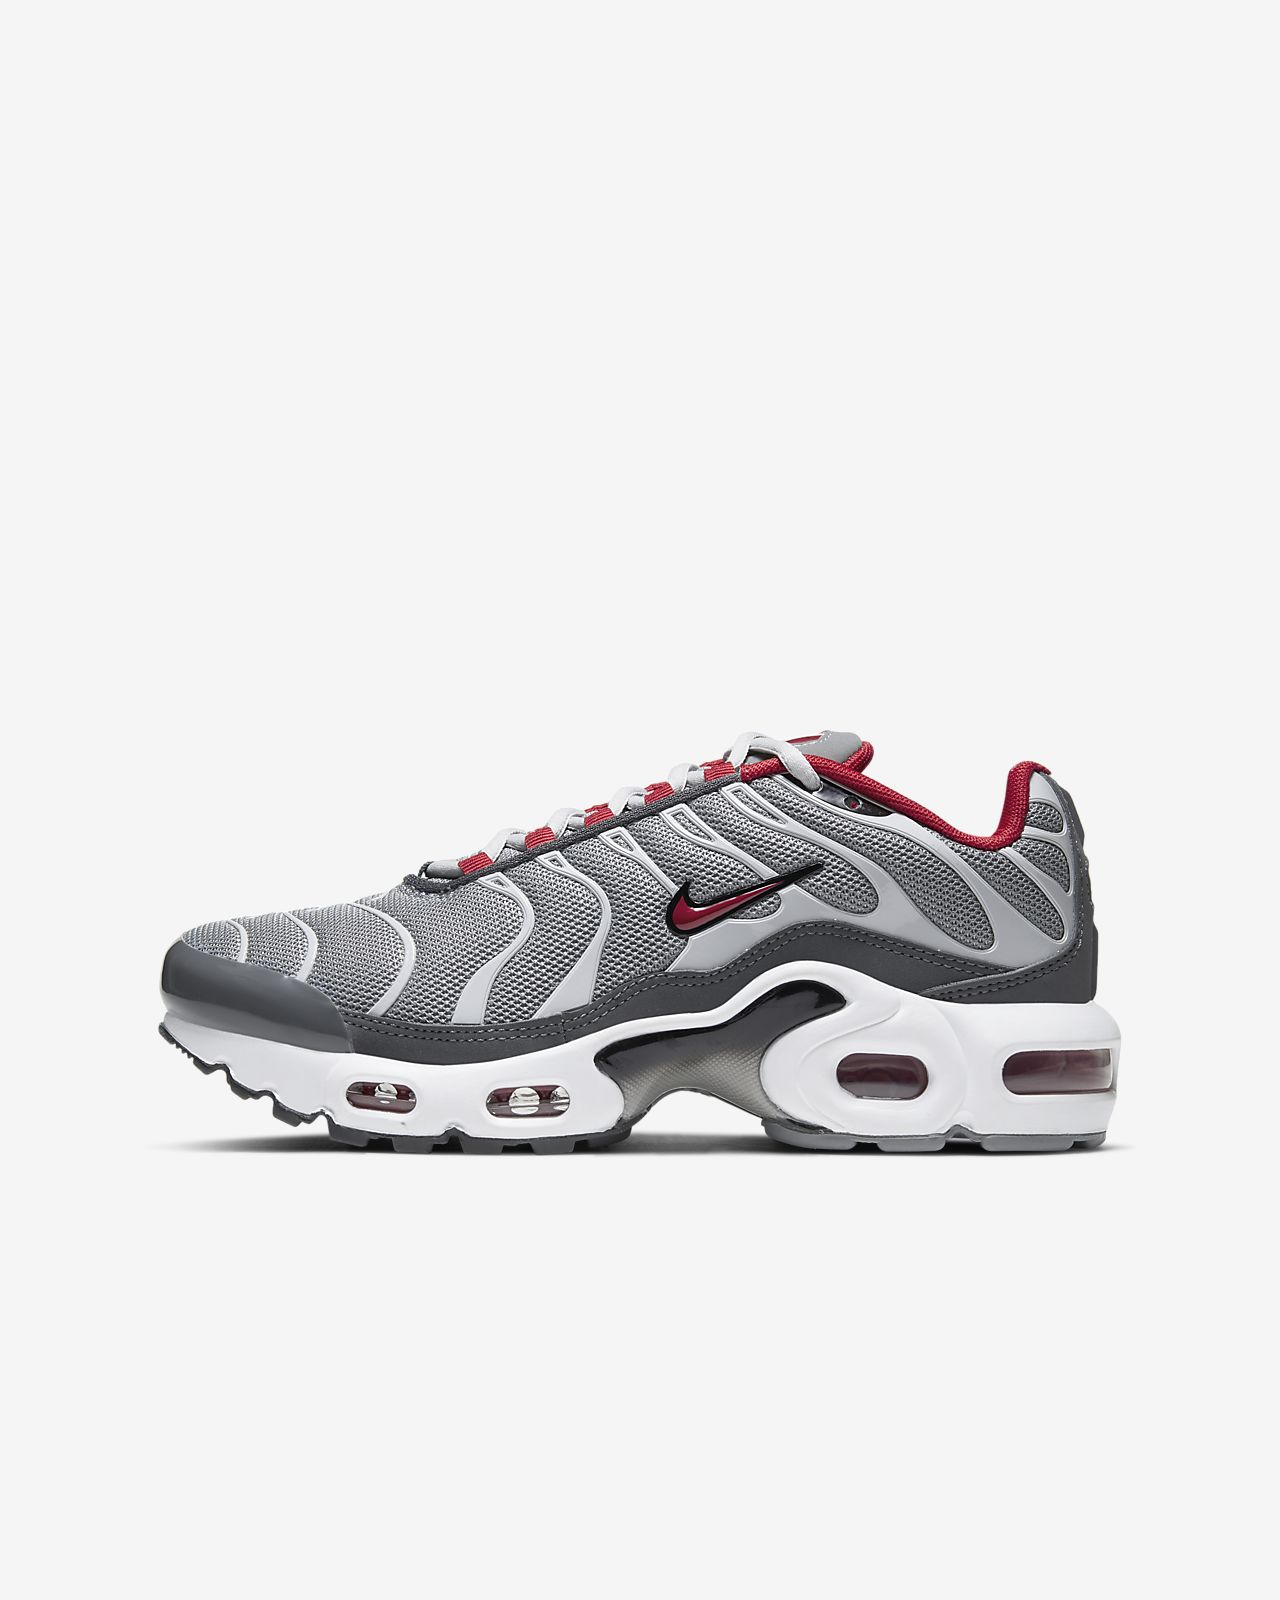 Nike Air Max Plus SE TN BlackWhite Sneakers Men's Running Shoes NIKE CIU012229